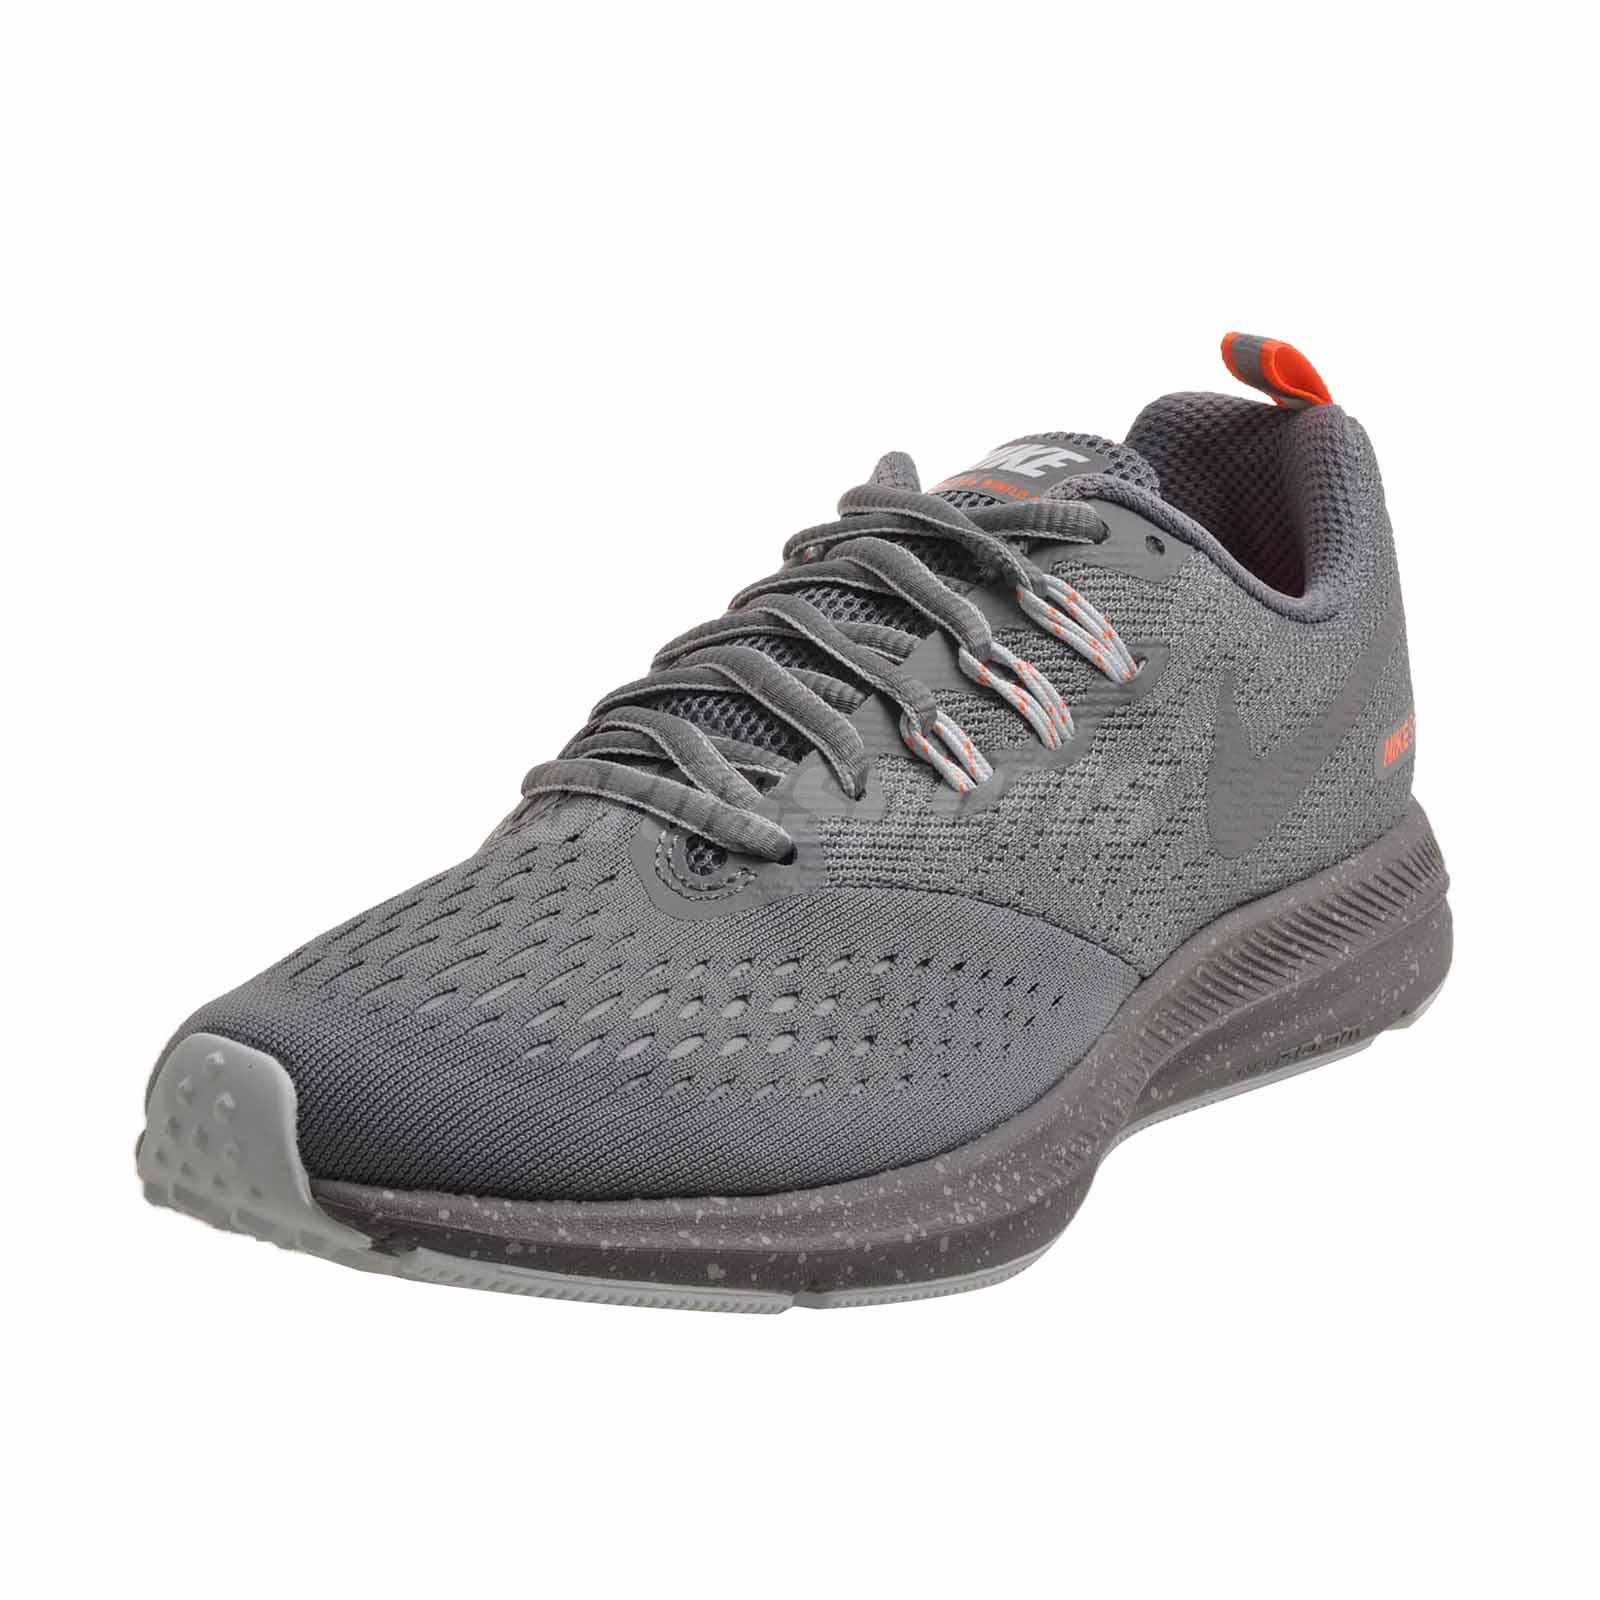 Details about Nike Wmns Zoom Winflo 4 Shield Running Womens Shoes Cool Grey Repel 921721 004